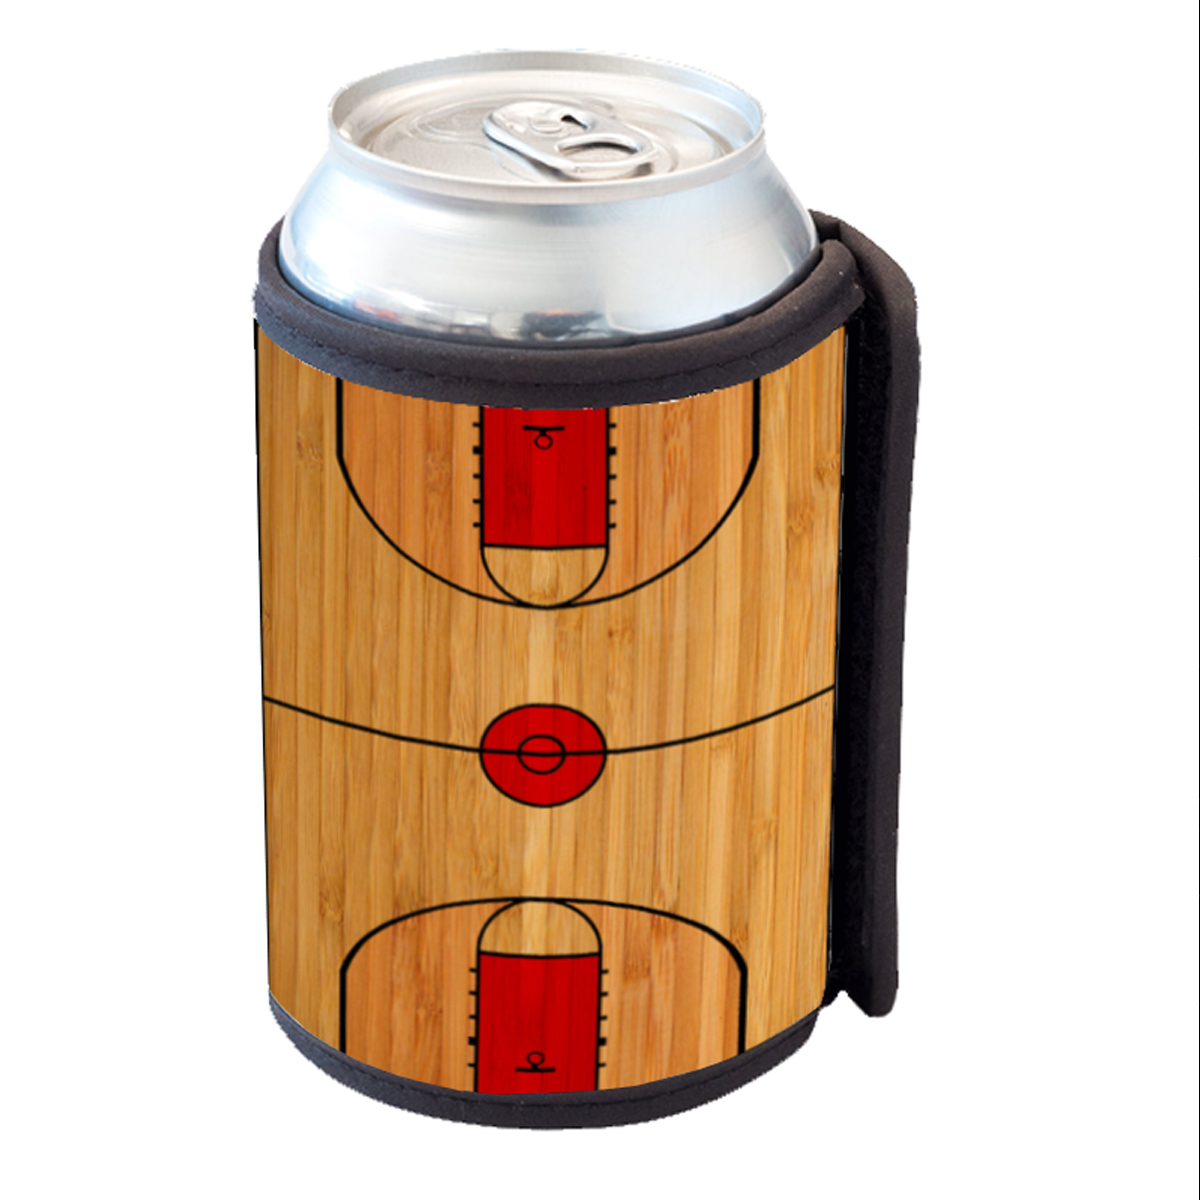 KuzmarK Insulated Drink Can Cooler Hugger - Basketball Court